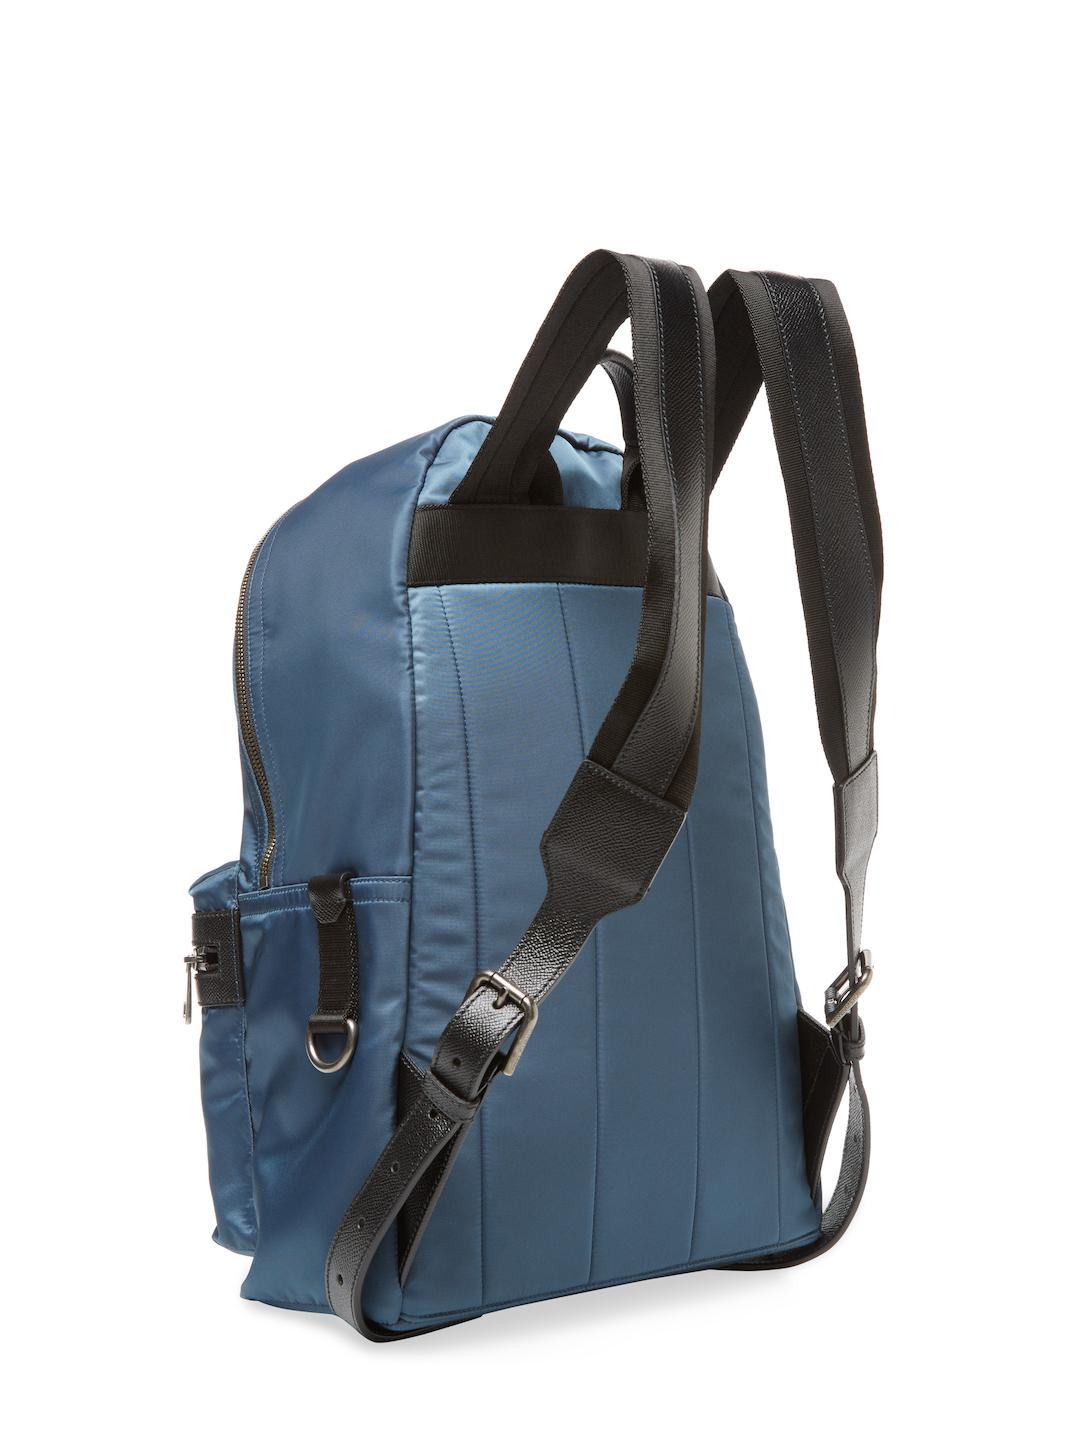 Dolce & Gabbana Leather Cowboy Patch Backpack in Blue for Men